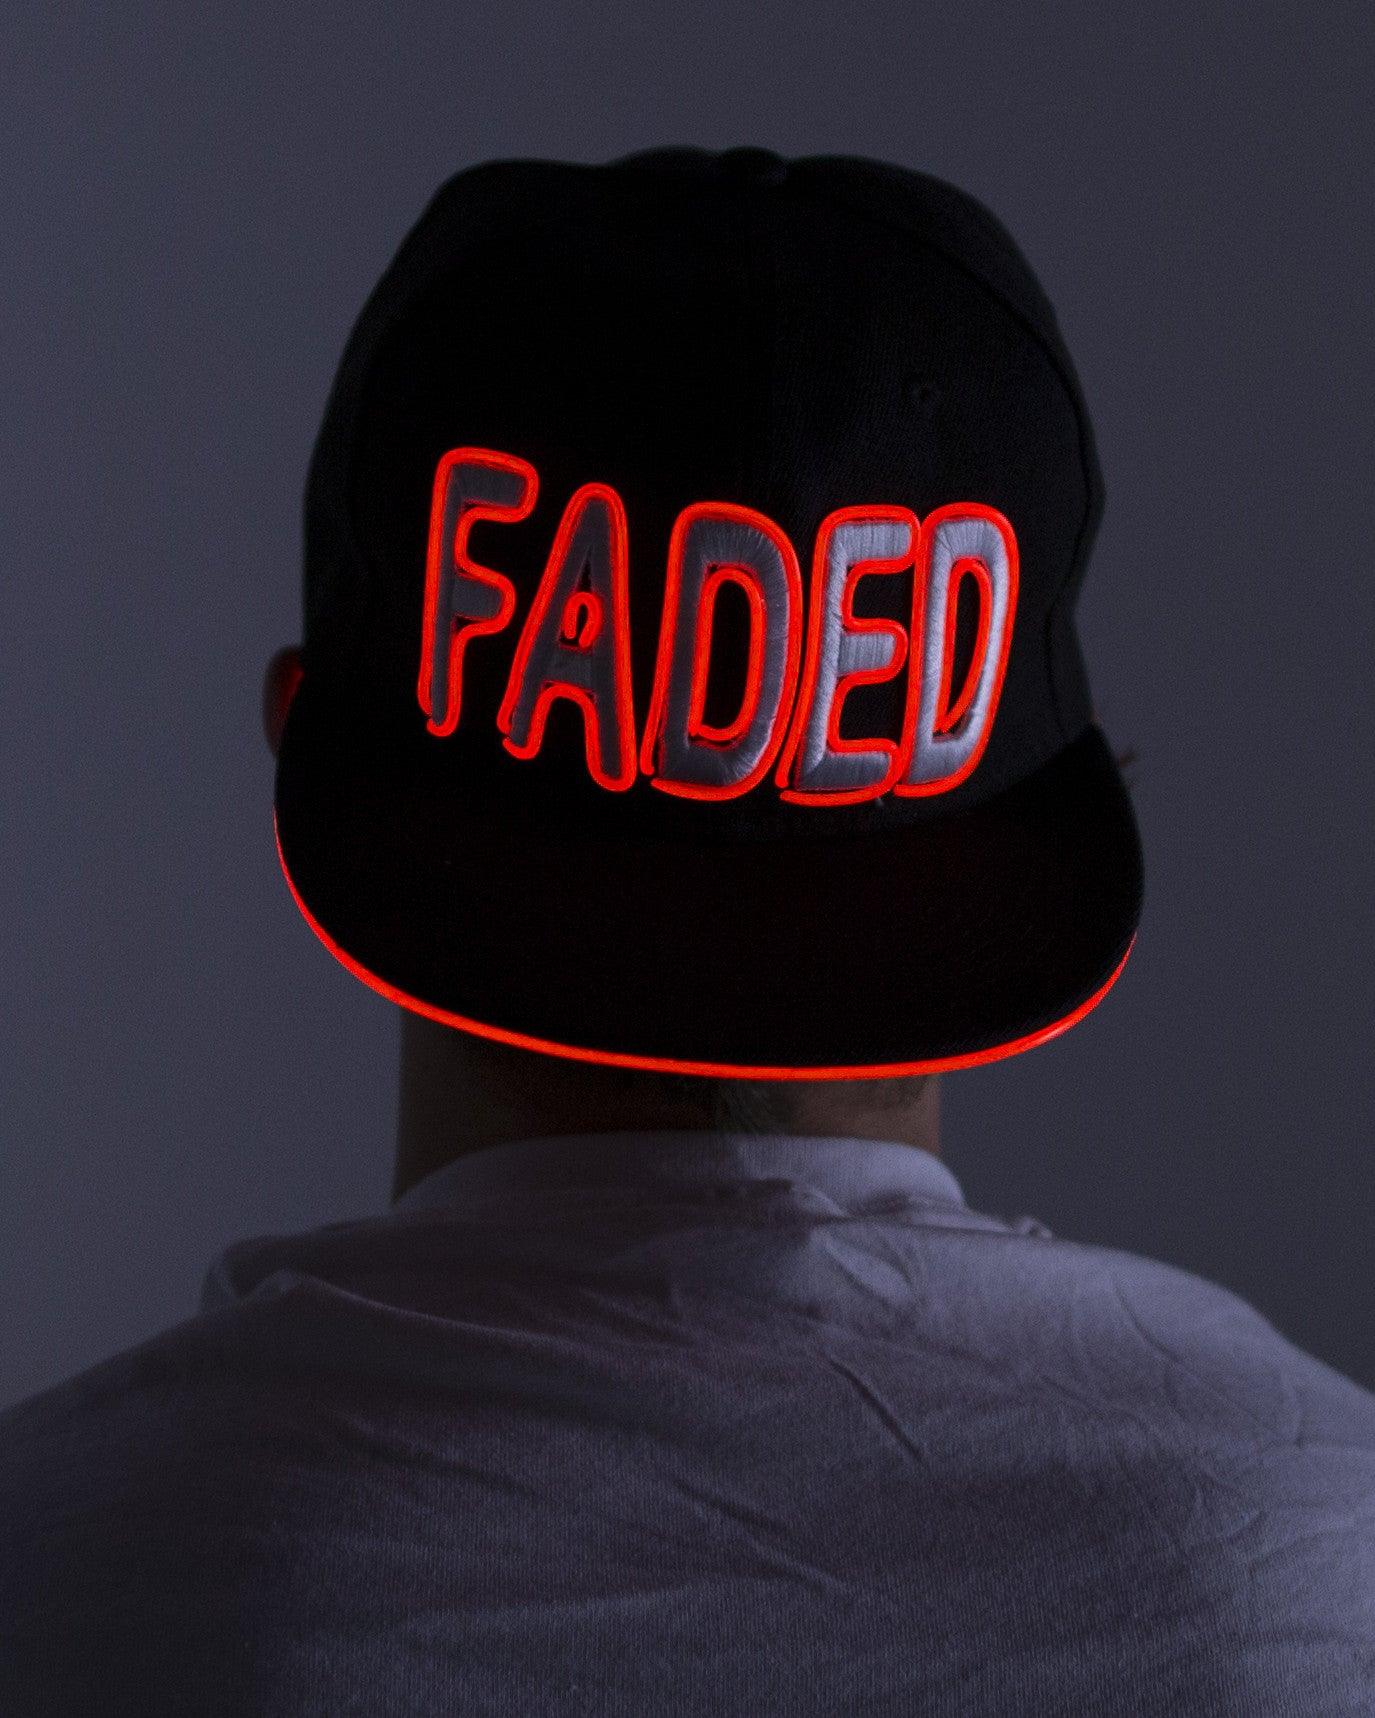 Light Up Hat - Faded - Electric Styles | World's Number 1 Light Up Shoe Store - {product_type}} - Red - 4